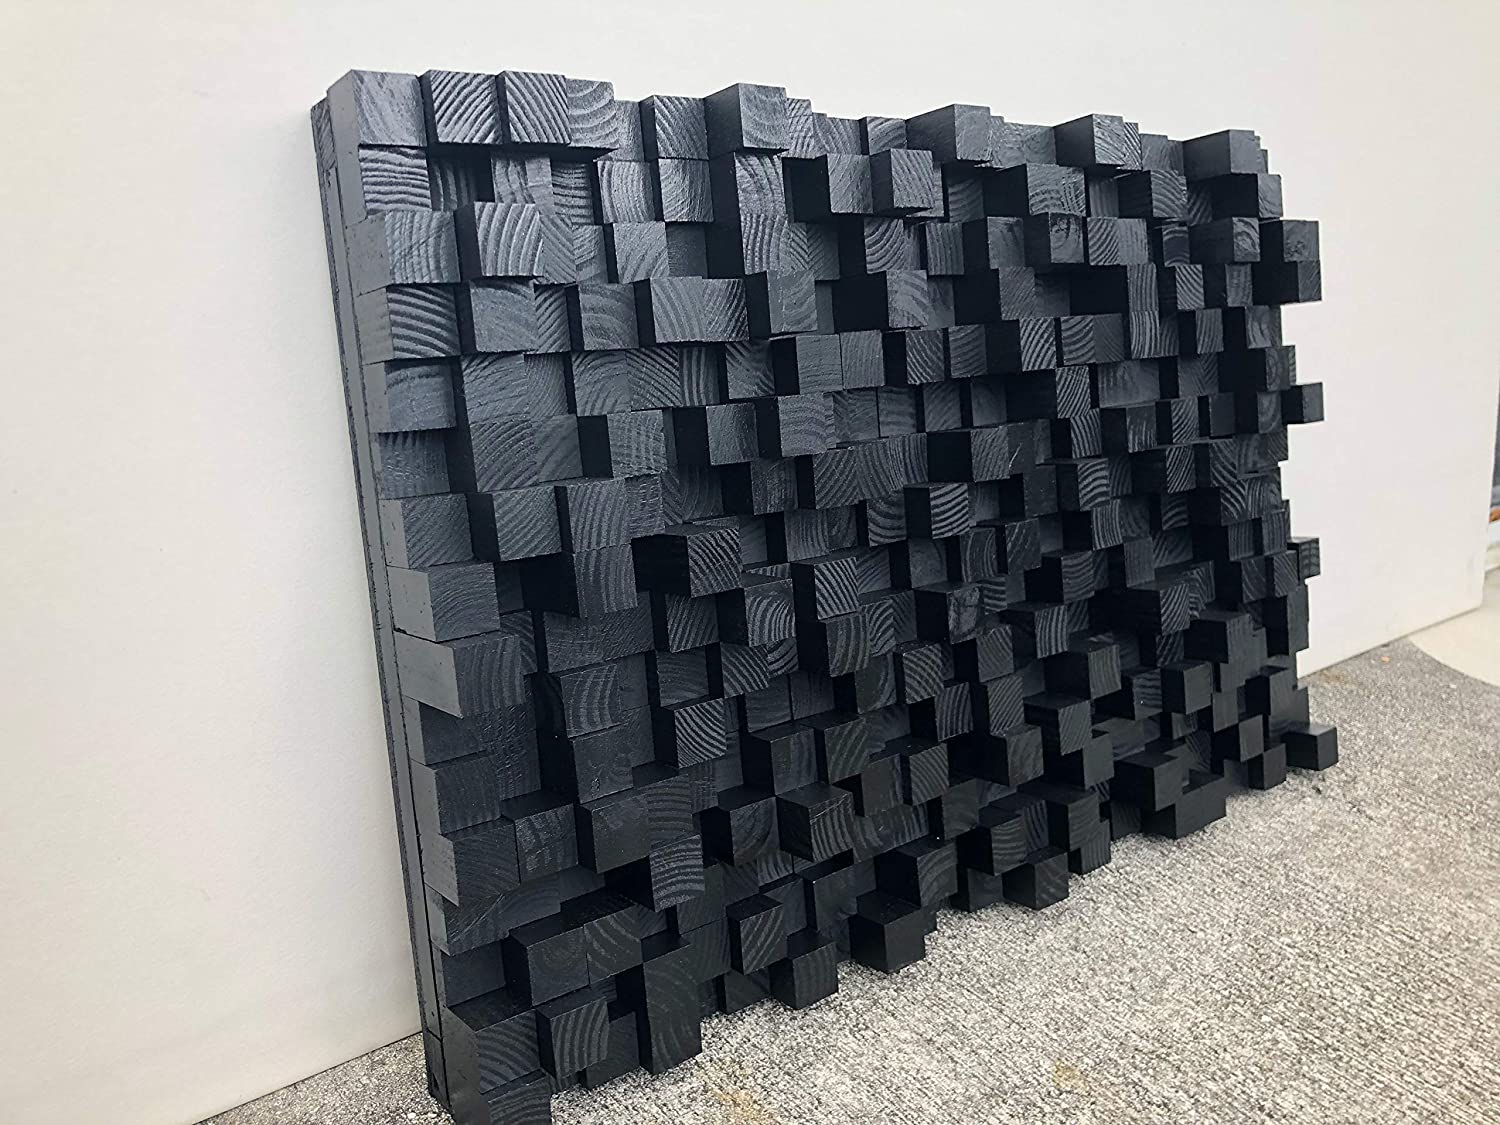 9x New Quality SOLID Diffuser wall acoustic panel sound studio home